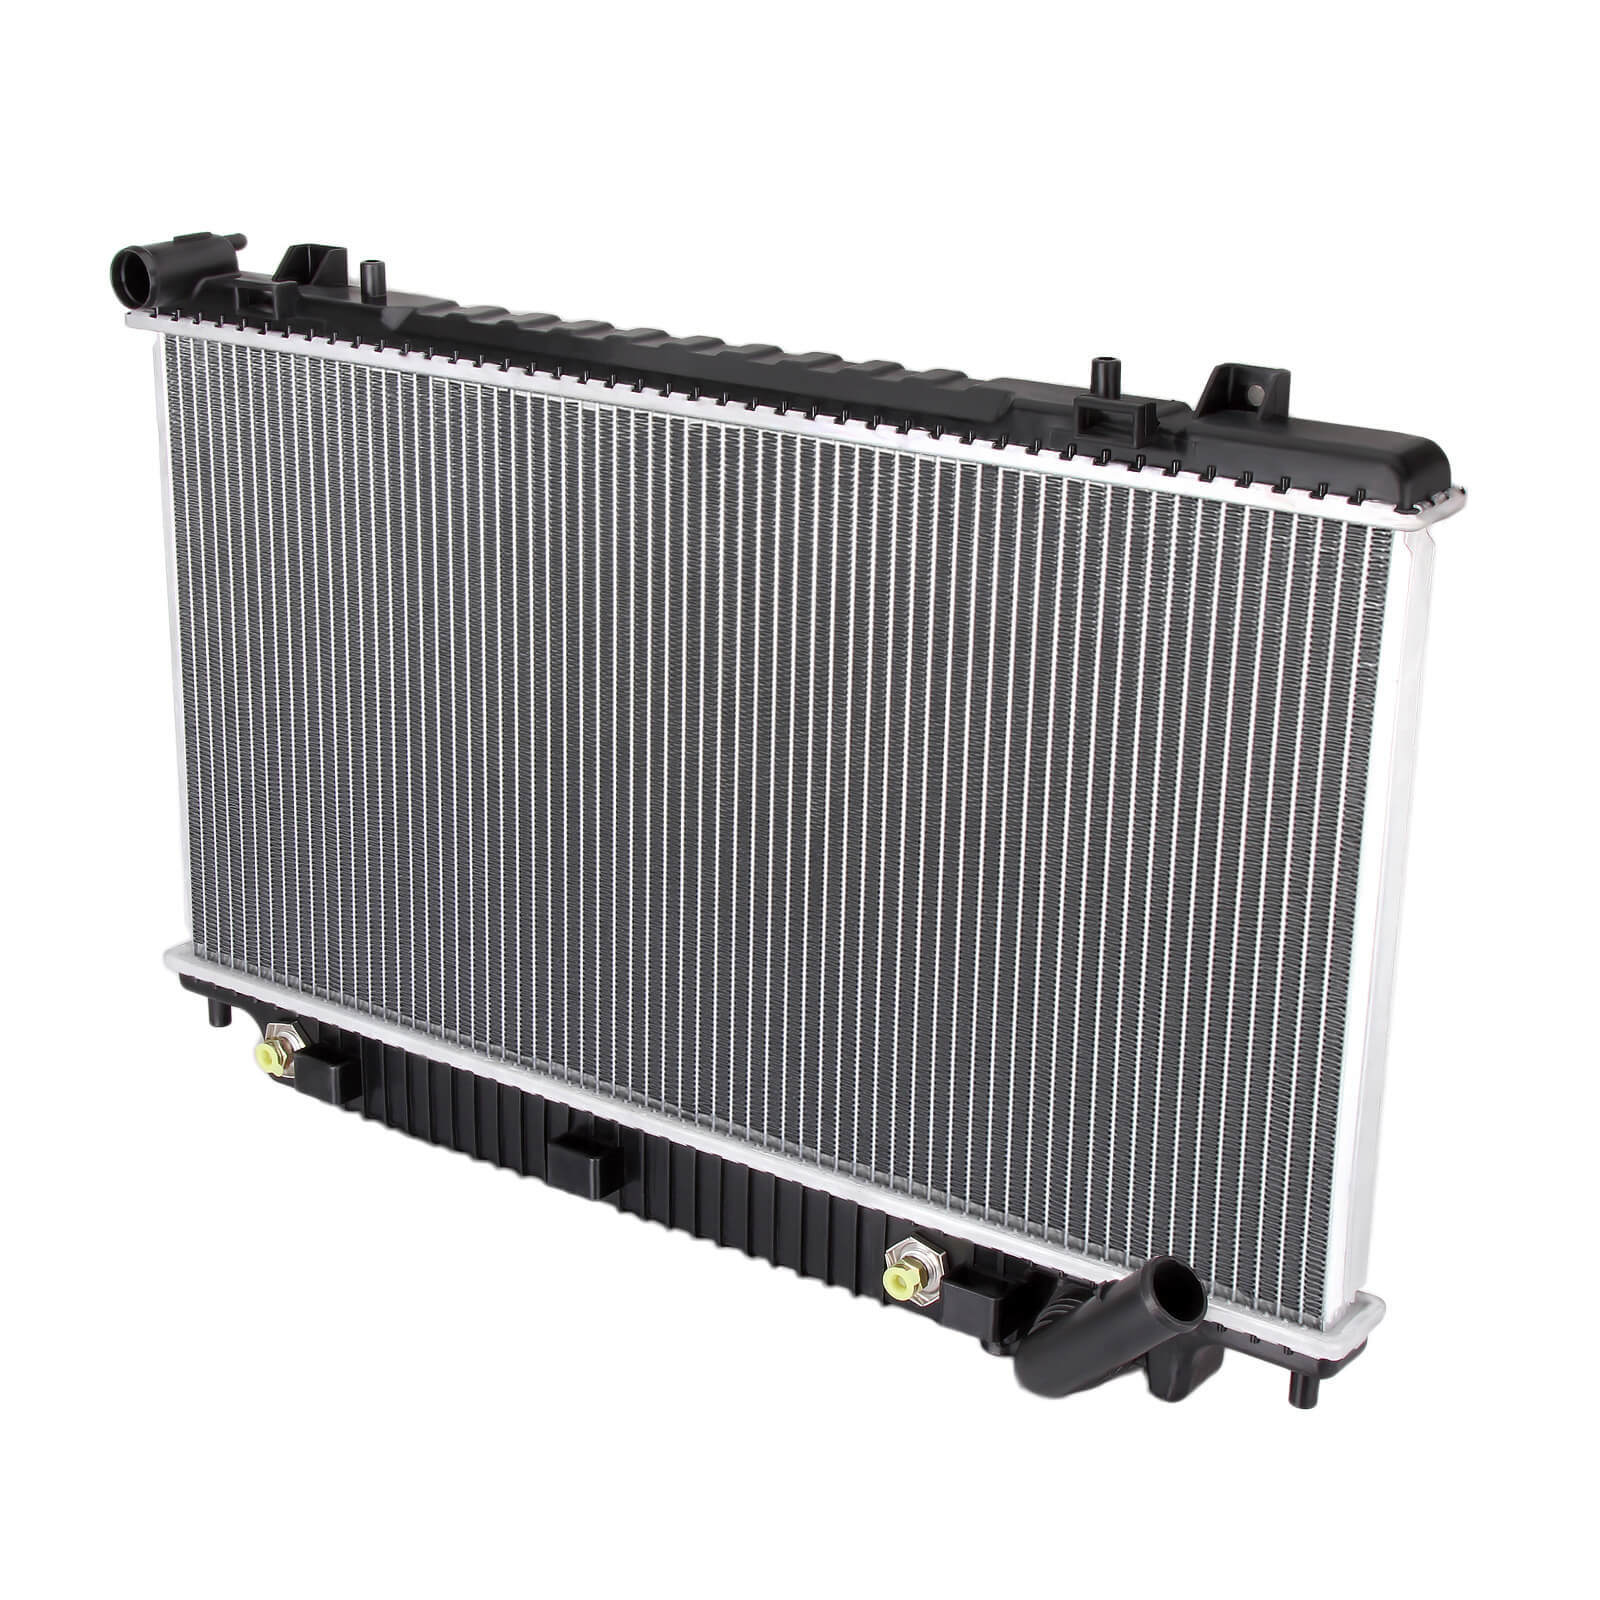 Radiator-For-Holden-Commodore-VE-3-0-3-6-V6-2006-2012-Auto-Manual-High-Quality